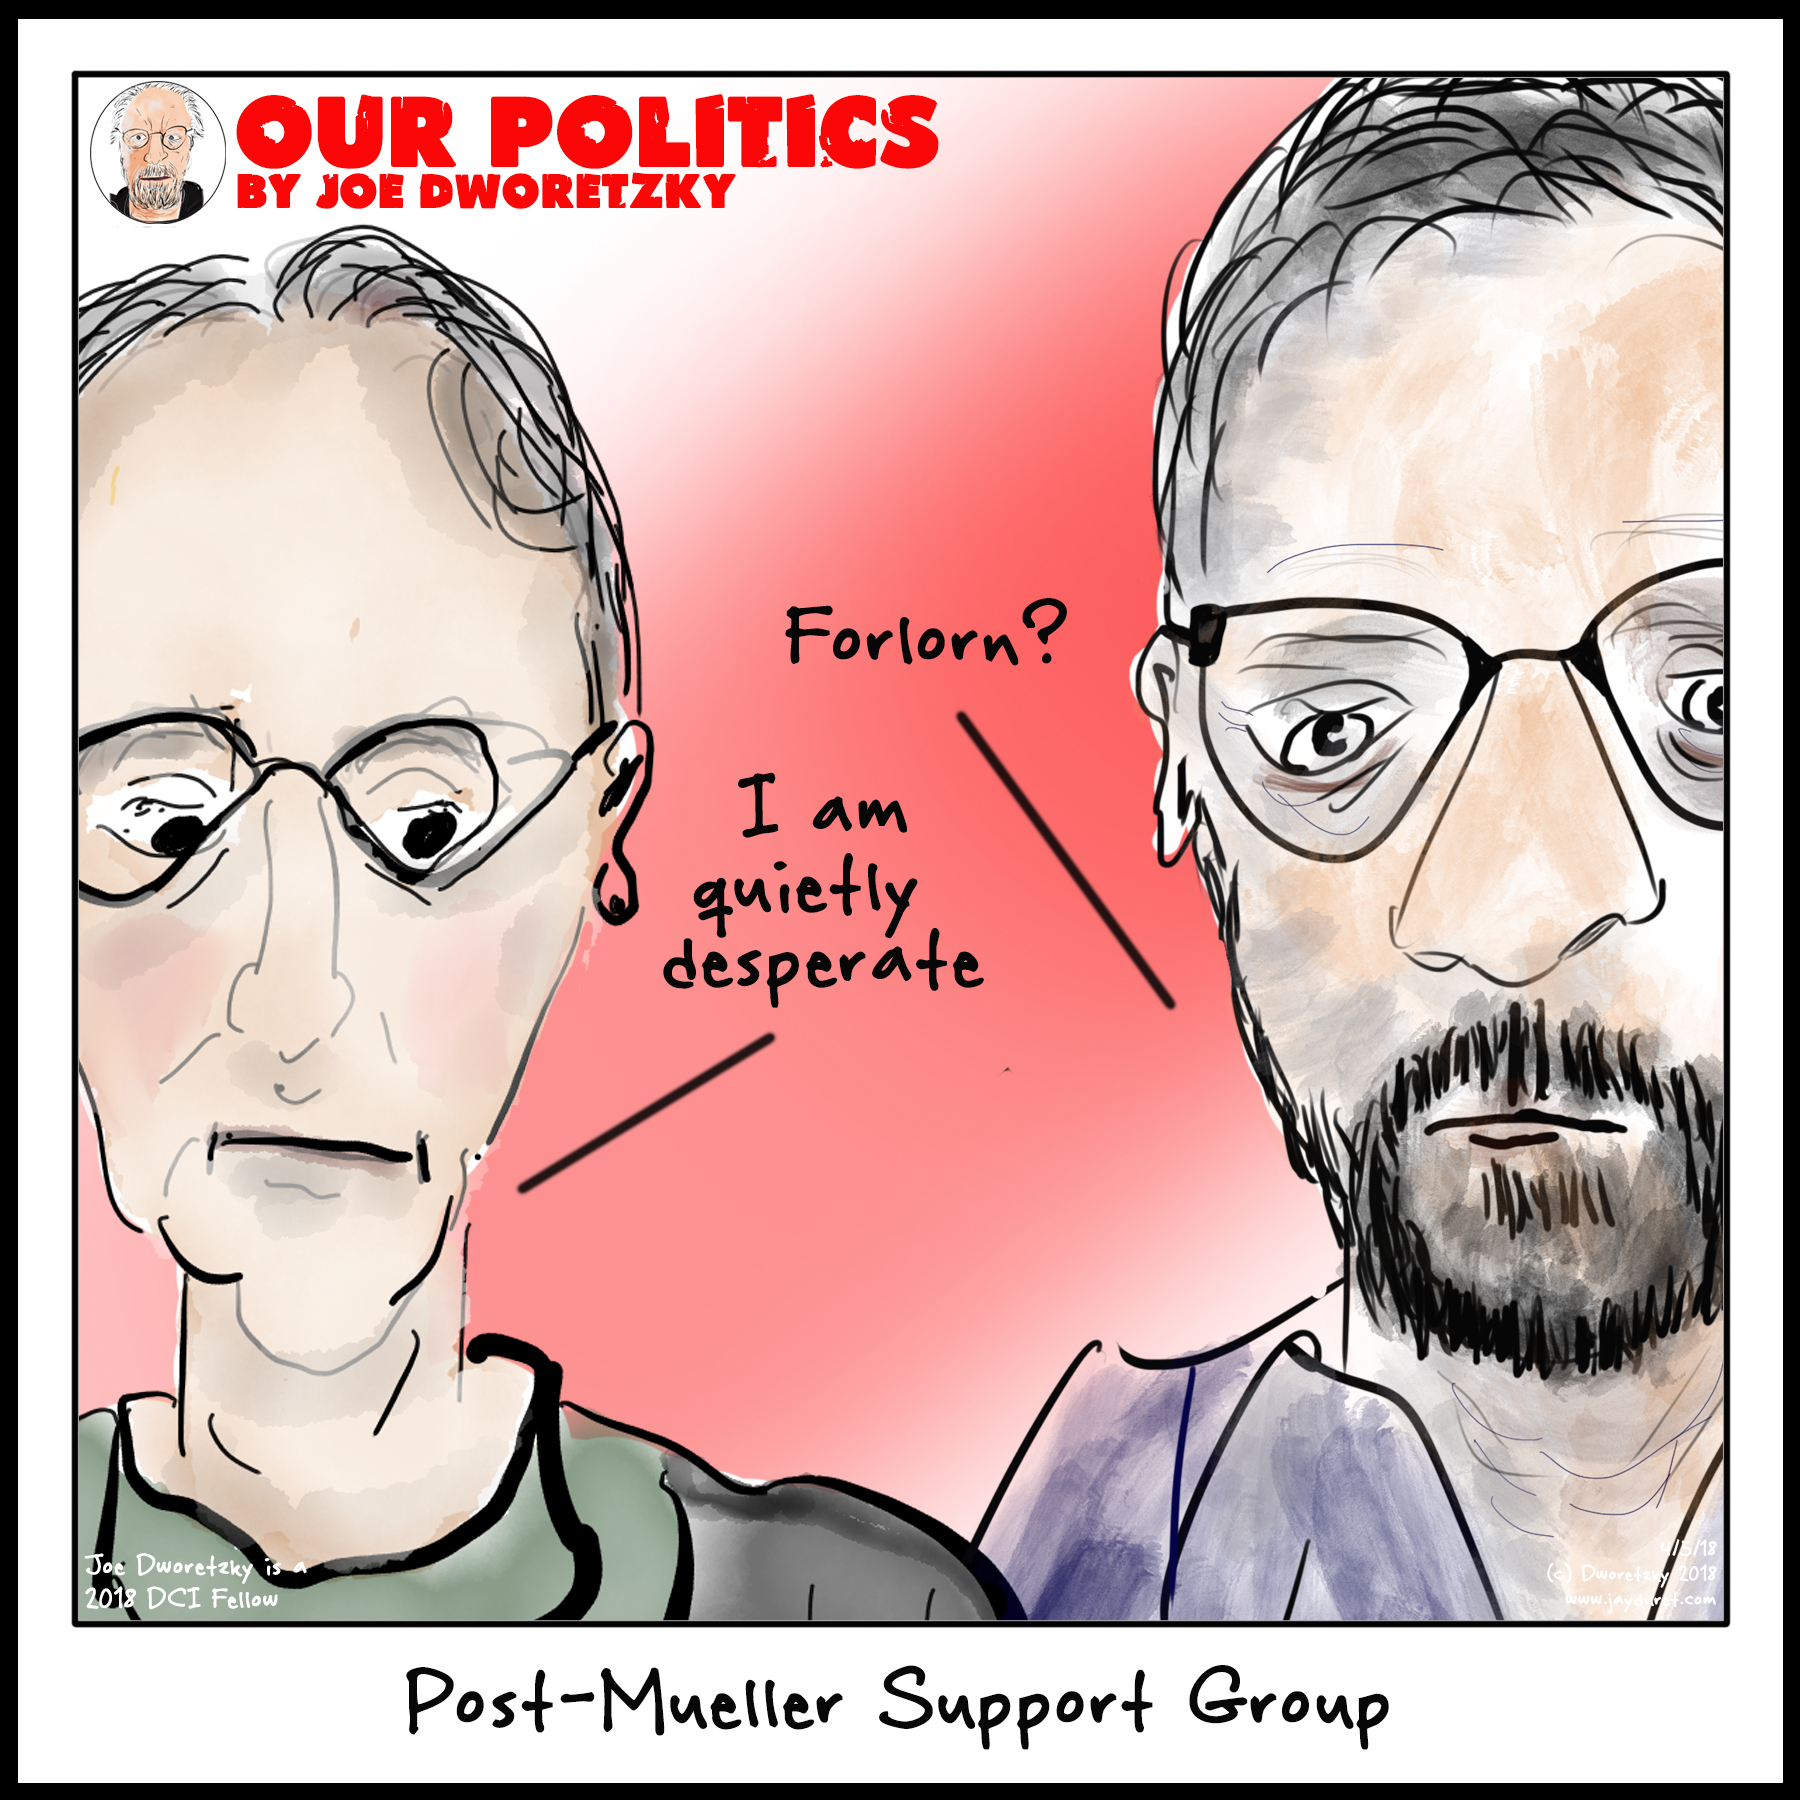 Post-Mueller Support Group